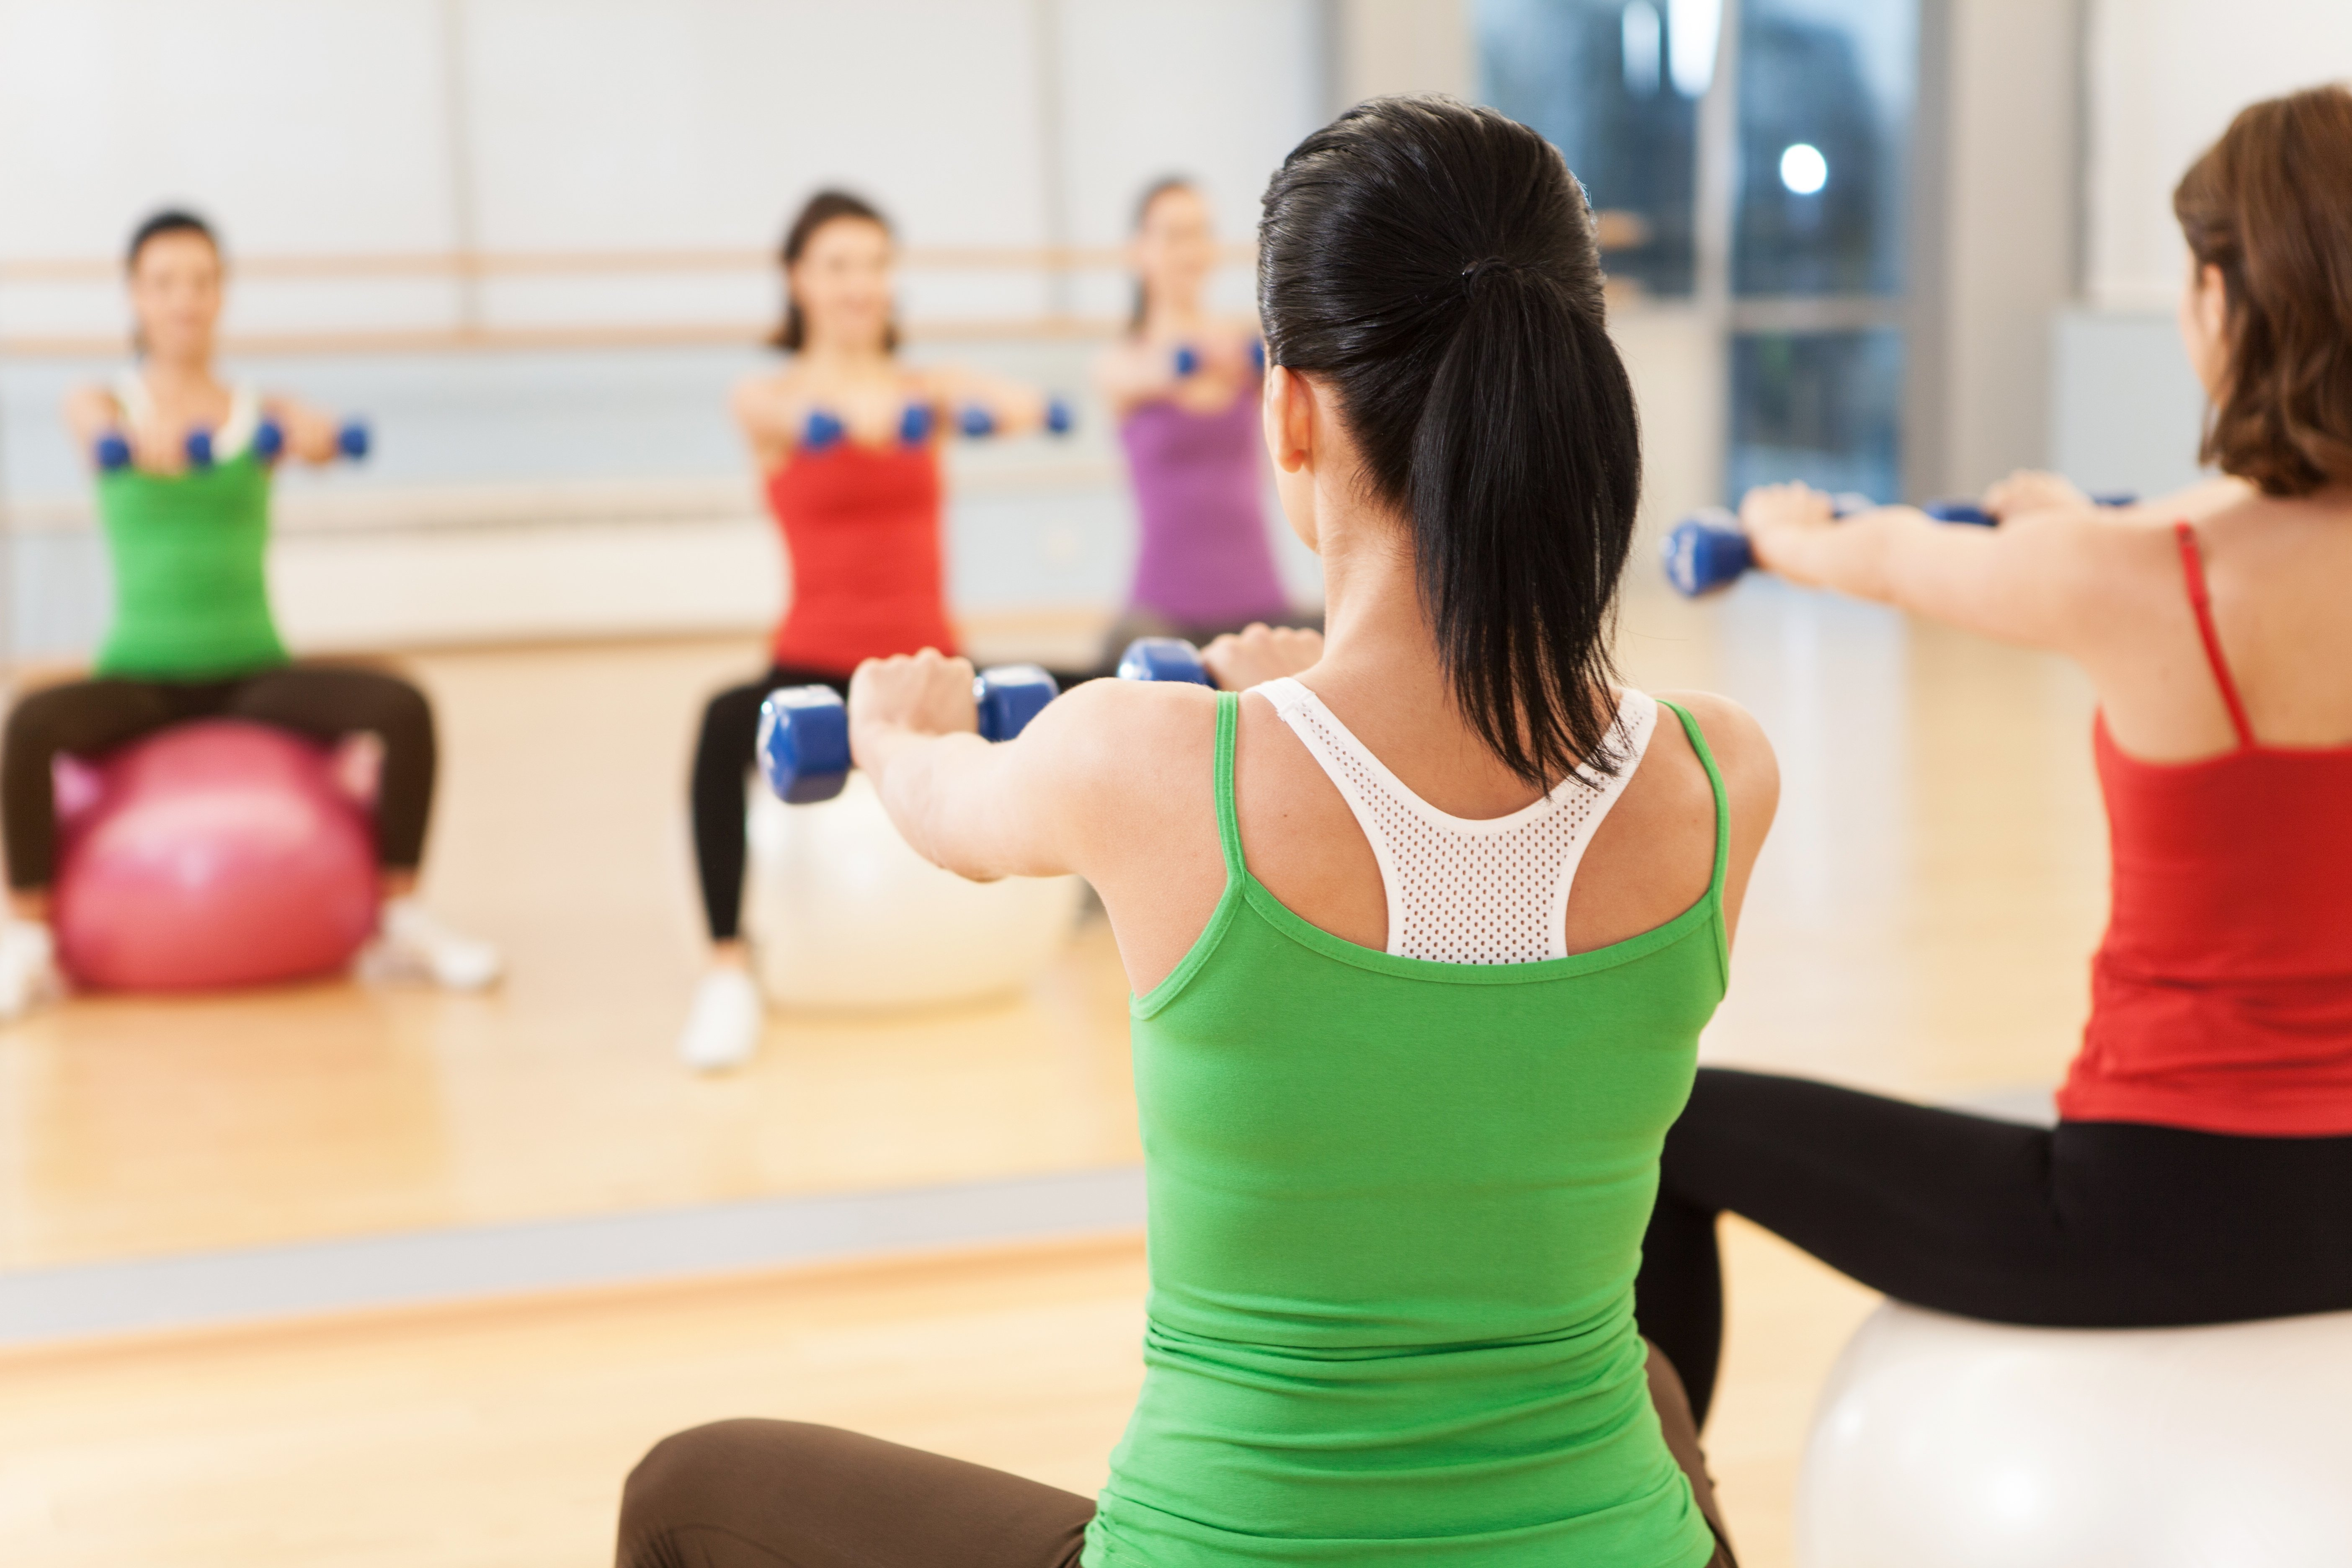 big man in the woodspilates aerobics women group with stability ball